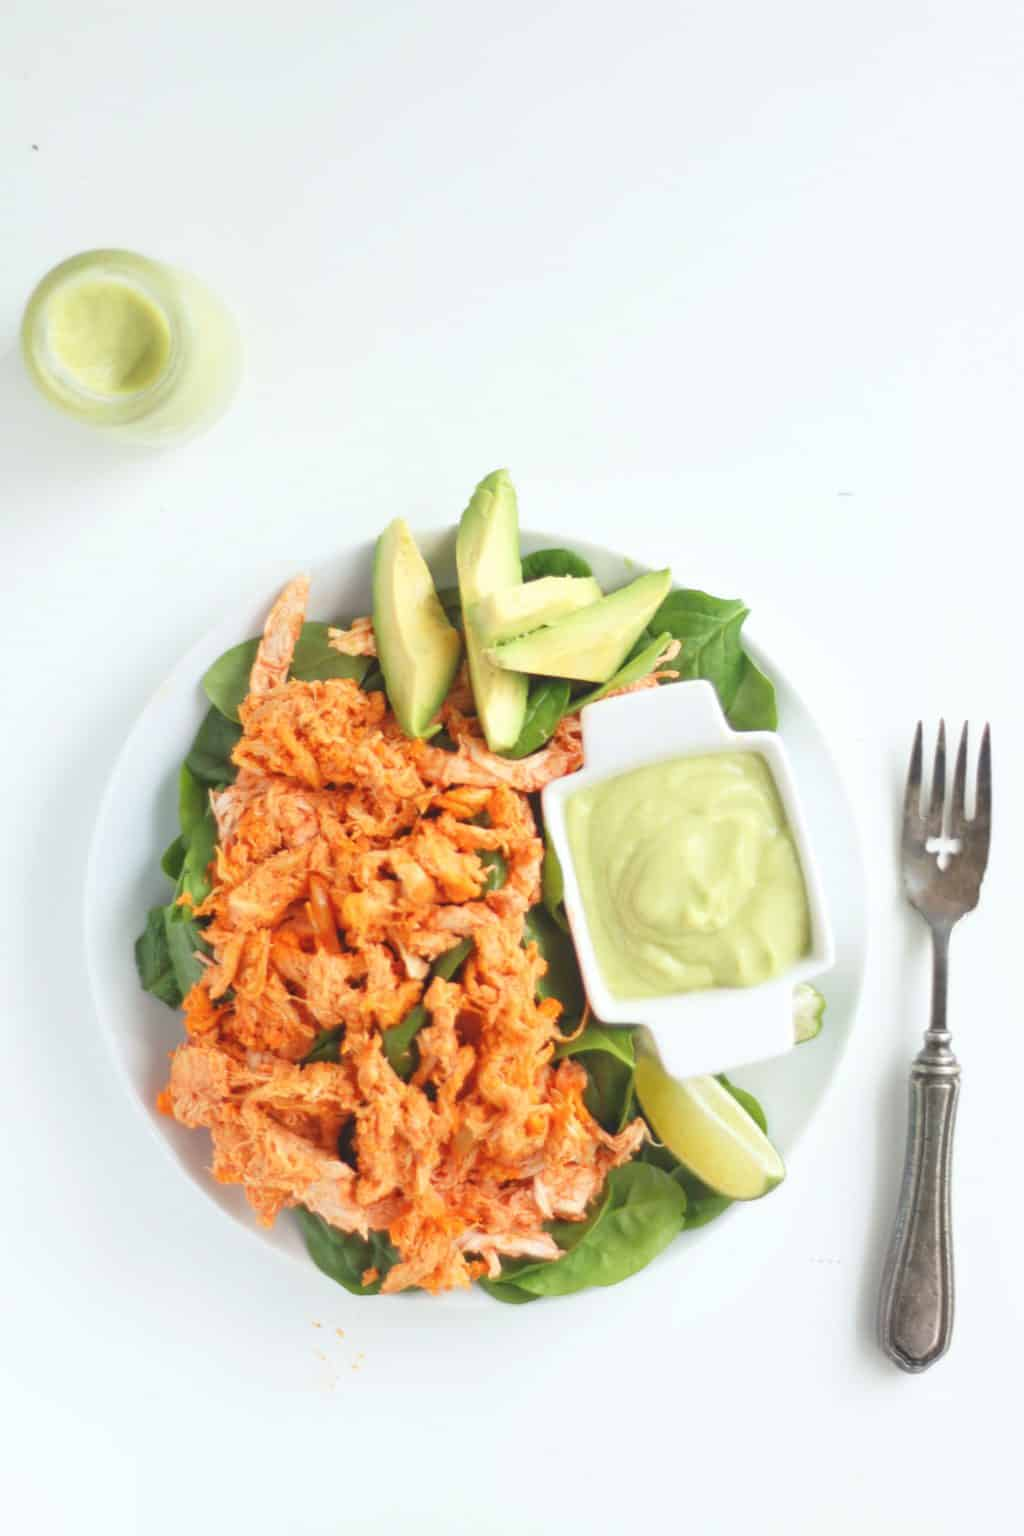 Buffalo Chicken Salad With Avocado Lime Dressing